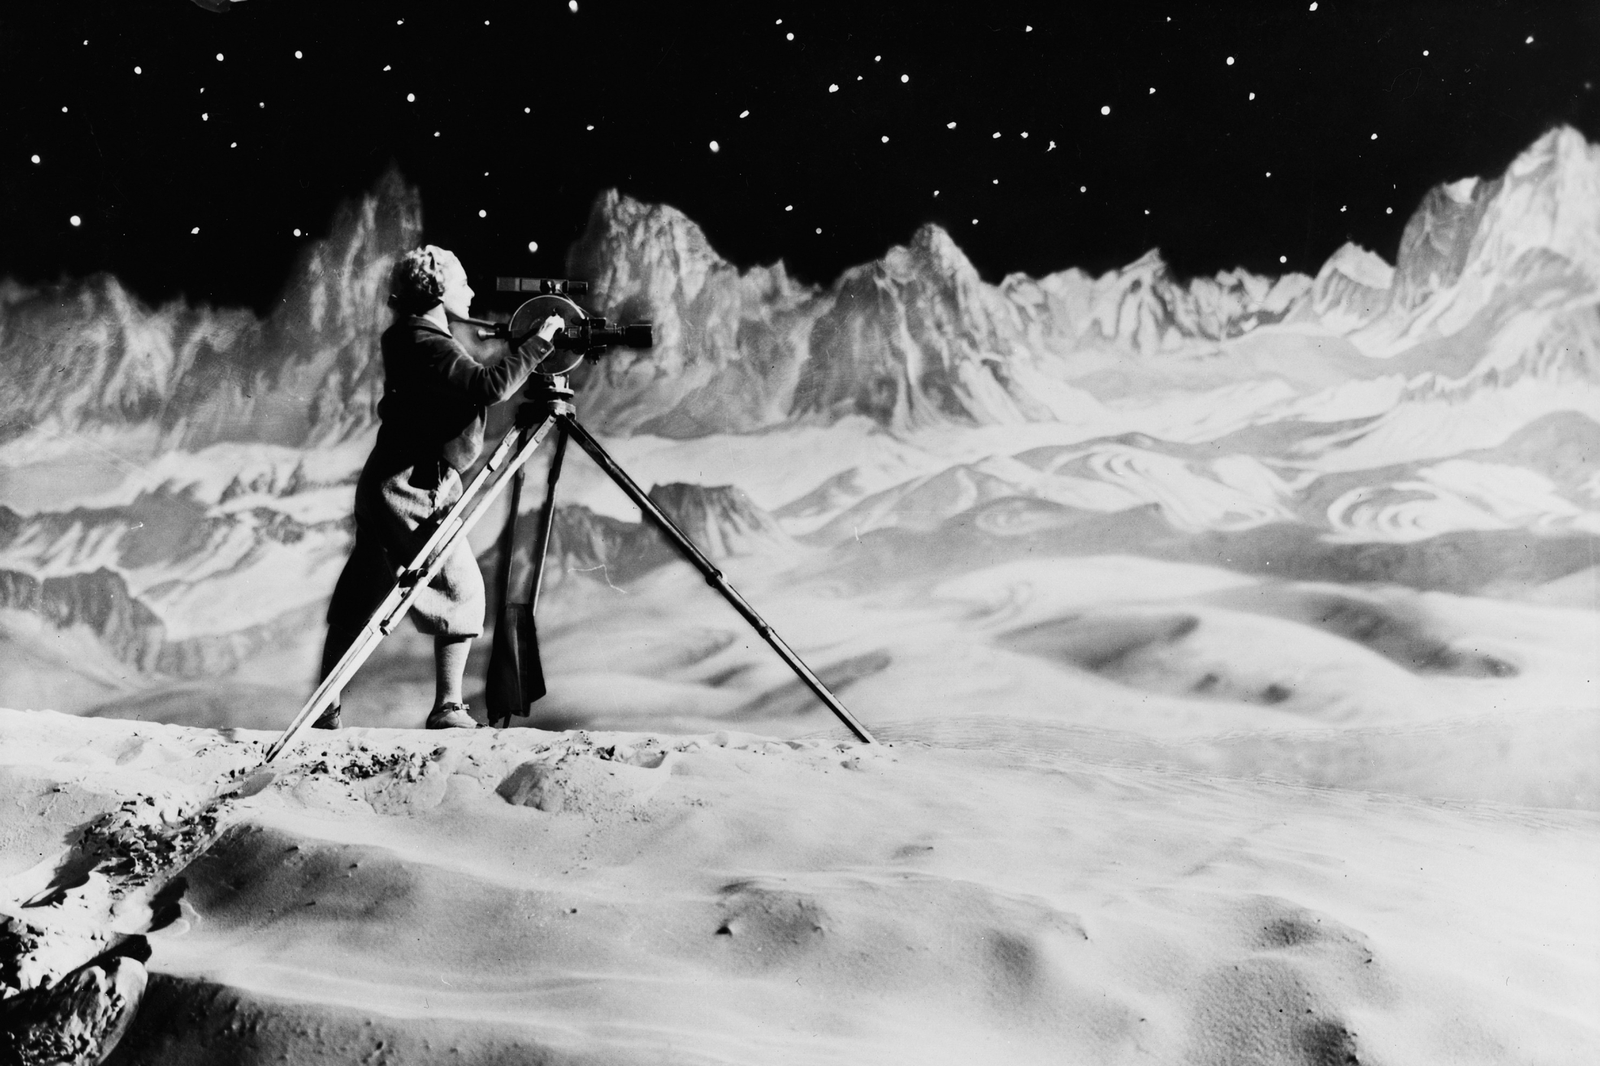 Production phot from the film Woman in the Moon (Germany 1929, directed by Fritz Lang)